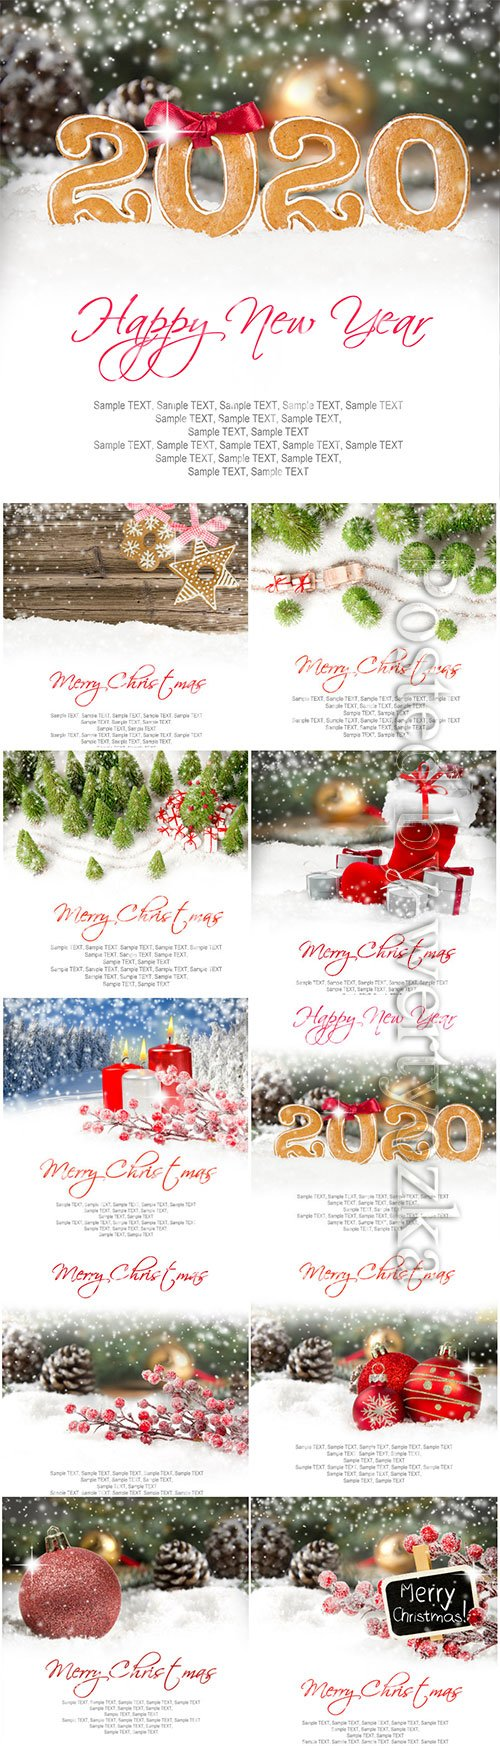 Christmas banners with fir branches, candles, gifts and Christmas decorations